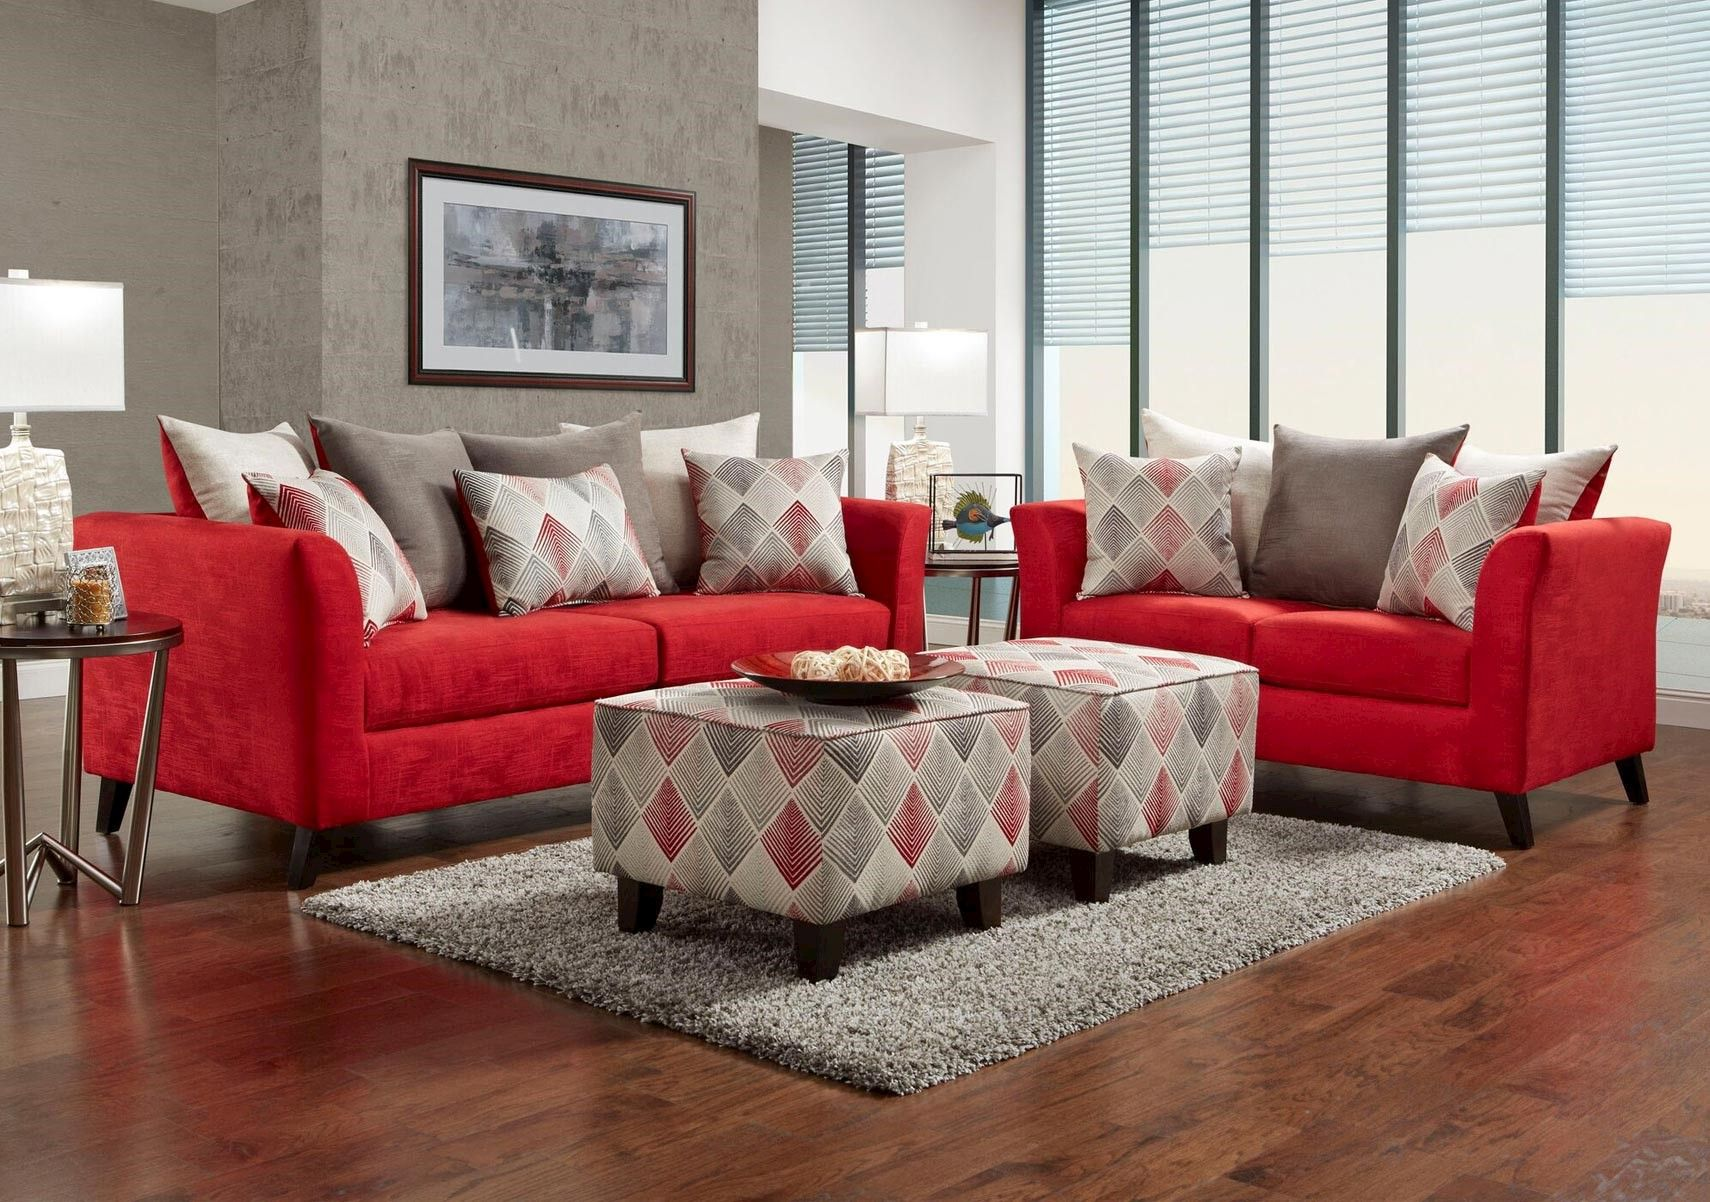 Lacks Stix 2 Pc Red Living Room Set Red Couch Living Room Red